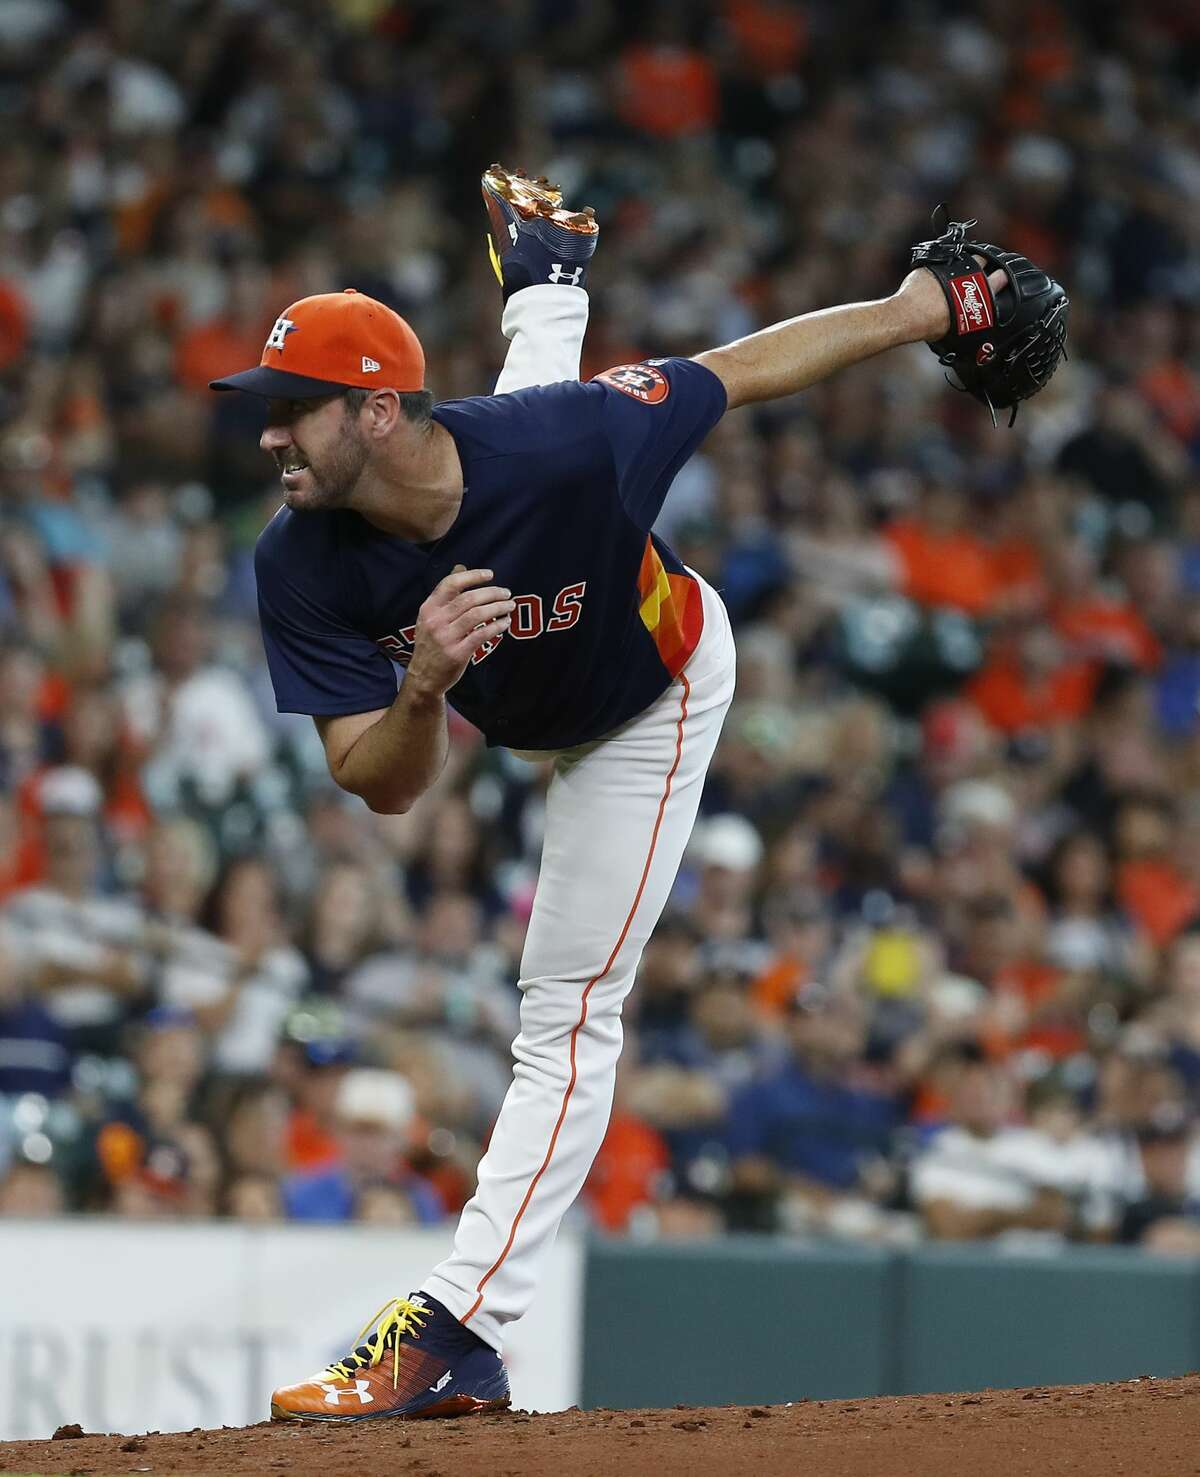 Houston Astros starting pitcher Justin Verlander (35) pitches during the second inning of an MLB game at Minute Maid Park, Sunday, July 15, 2018, in Houston. ( Karen Warren / Houston Chronicle )